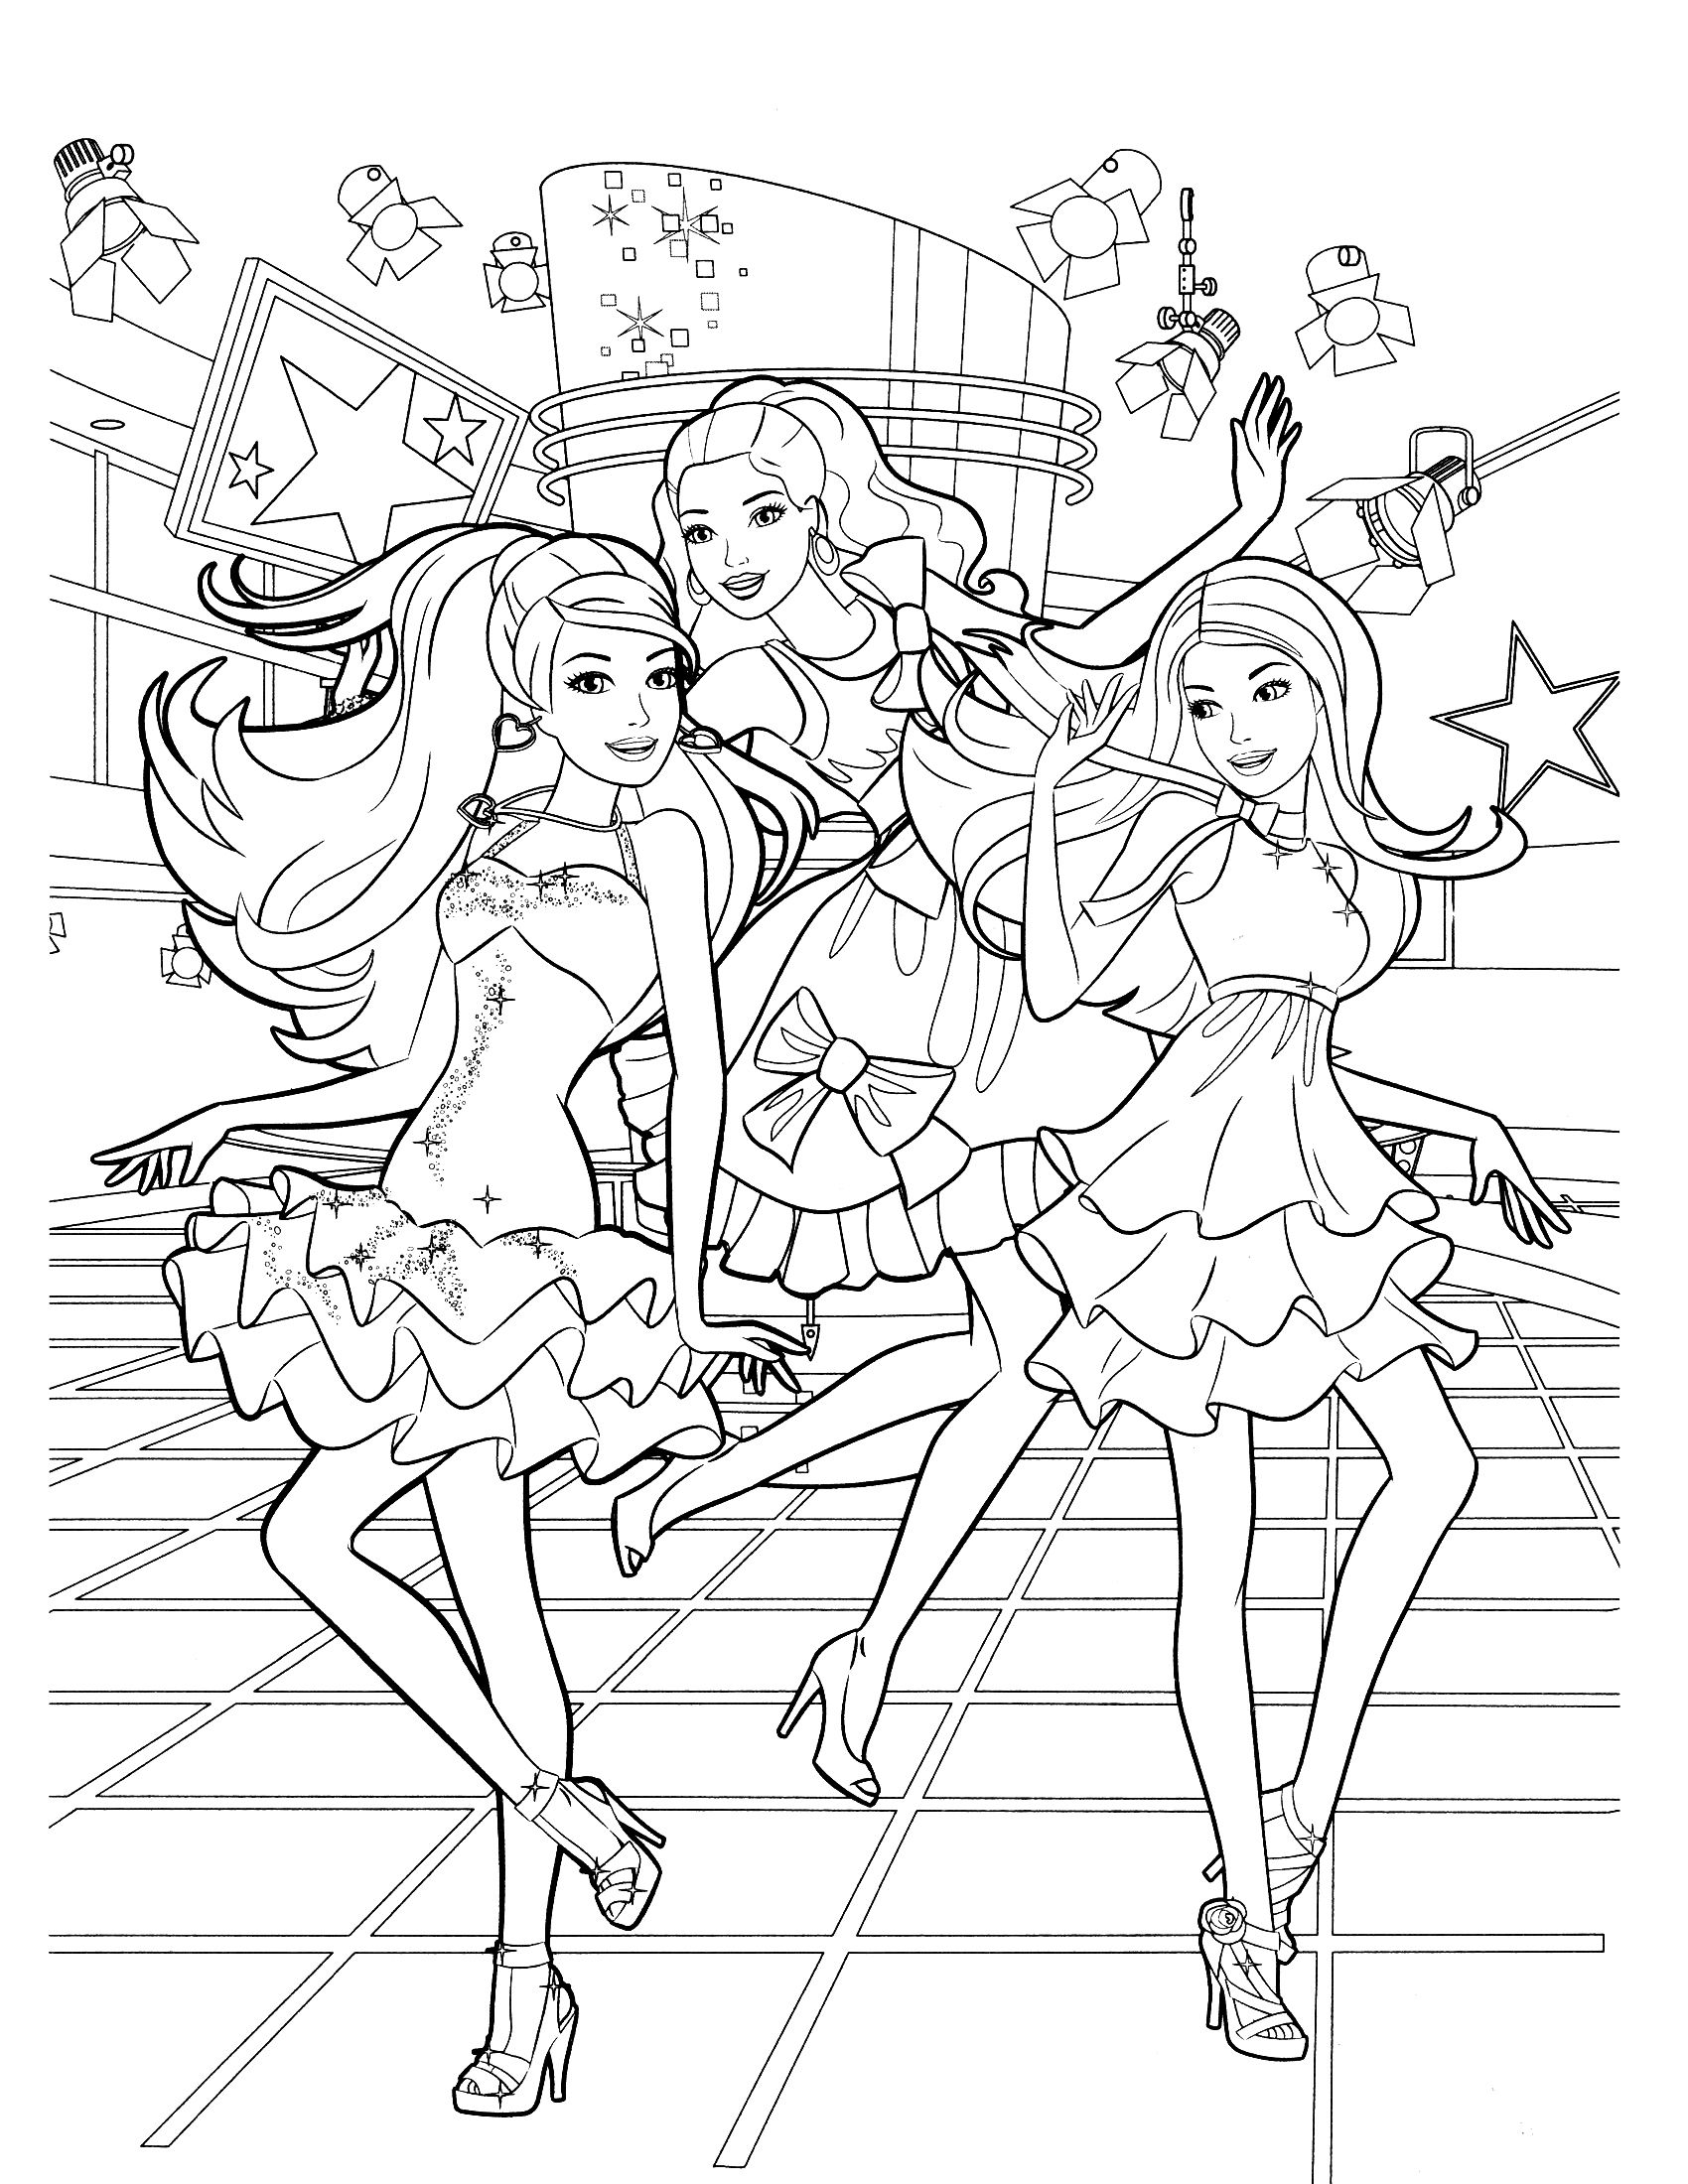 Barbie Coloring Pages Google Sogning Barbie Coloring Pages Barbie Coloring Sleeping Beauty Coloring Pages